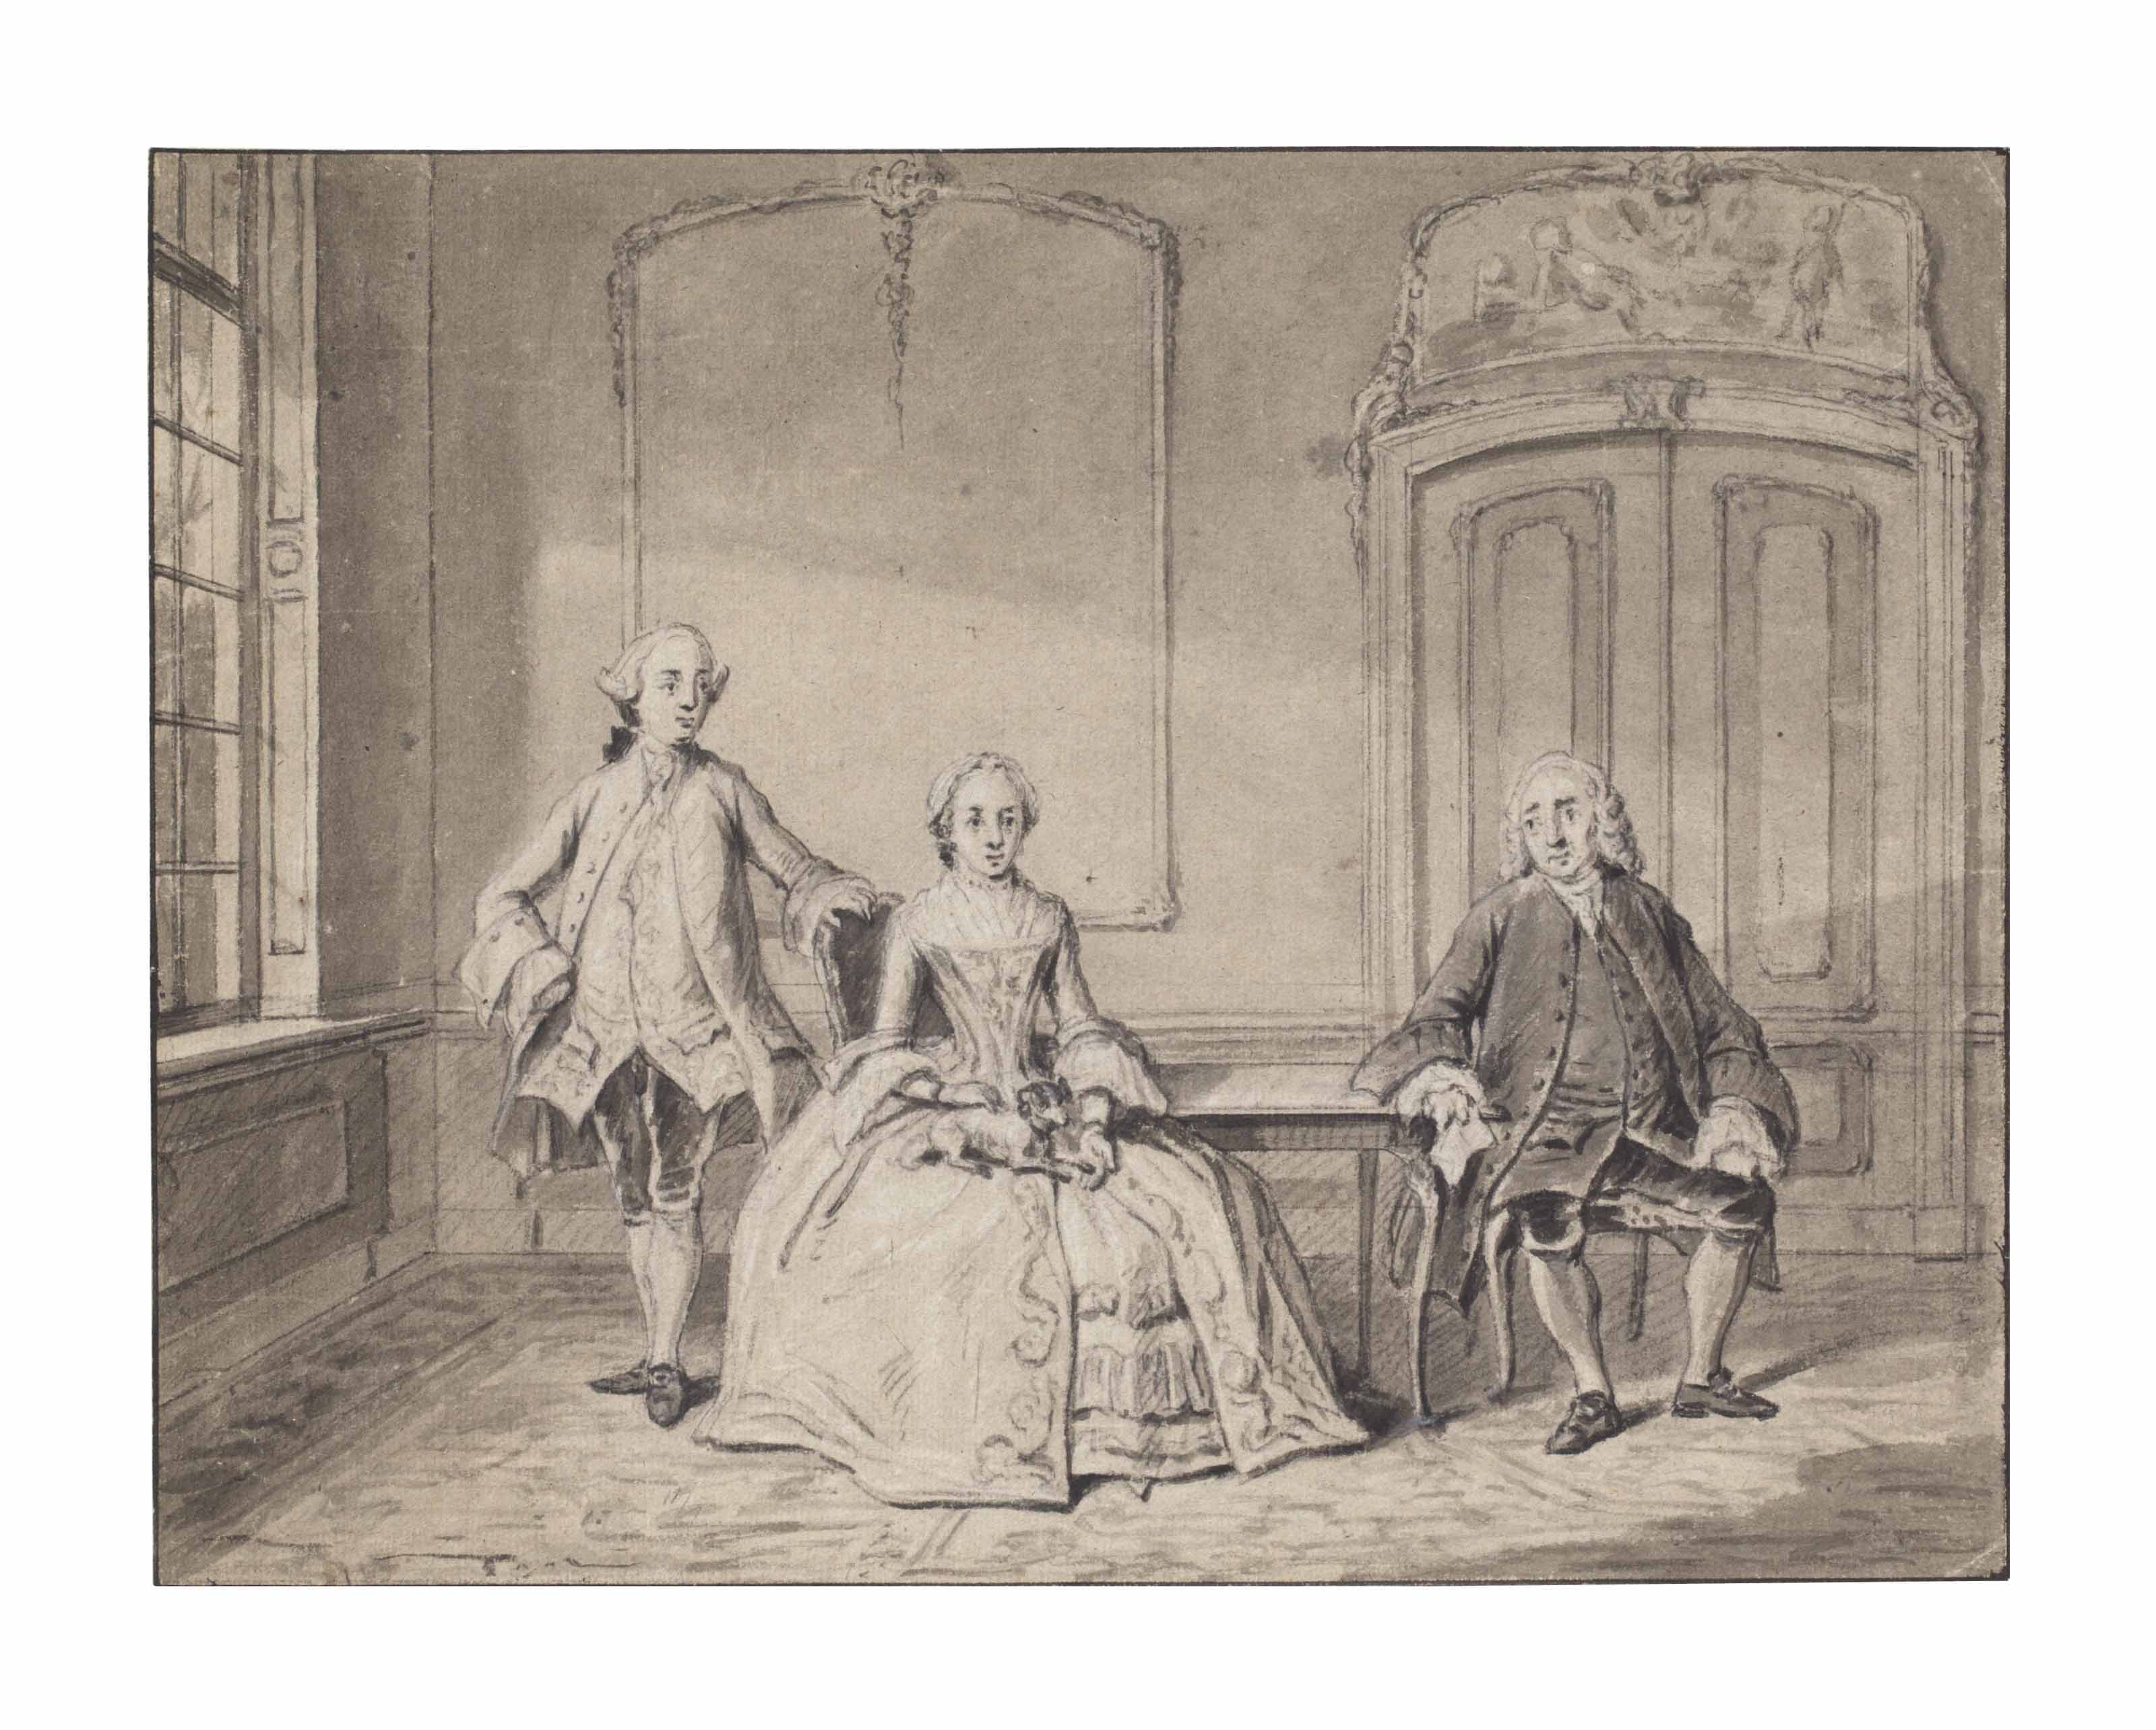 A group portrait in an interior: Cornelis van den Broek, his wife Lucia Cornelia Allard and their son Cornelis van den Broek